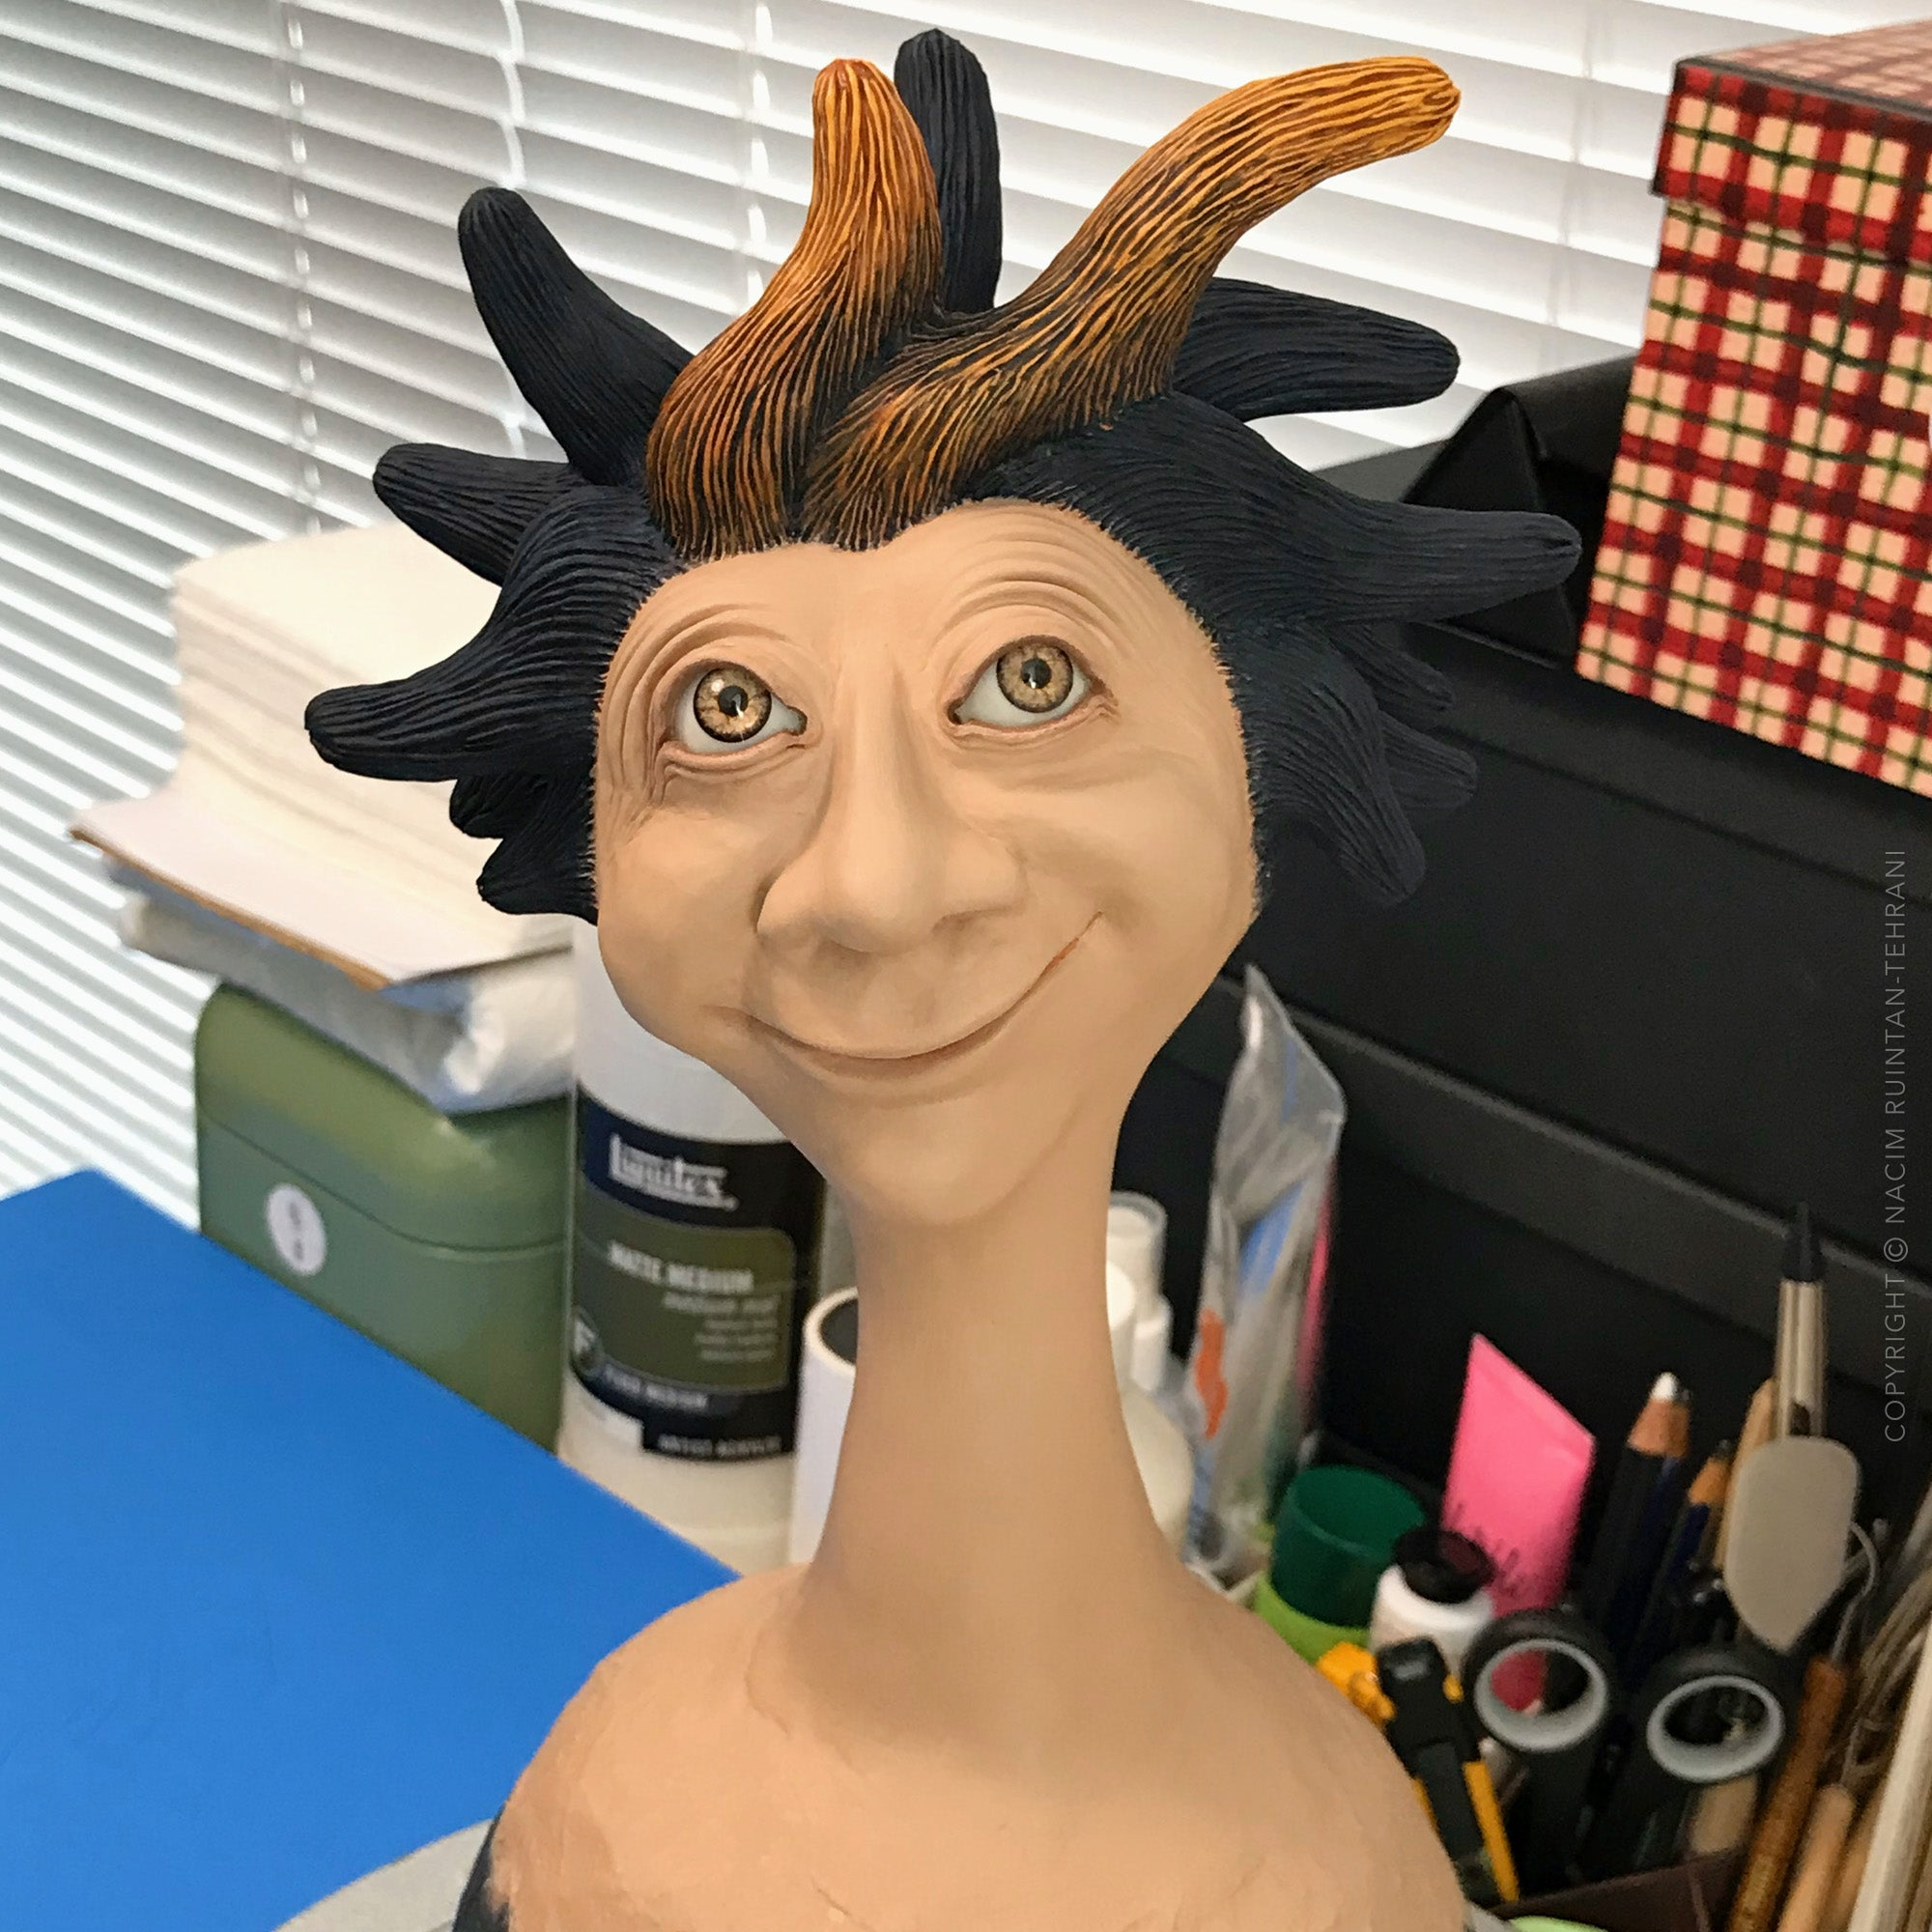 Spiky haired guy with a whimsical smile - a mixed media sculpture artwork in progress by Nacim Ruintan-Tehrani.